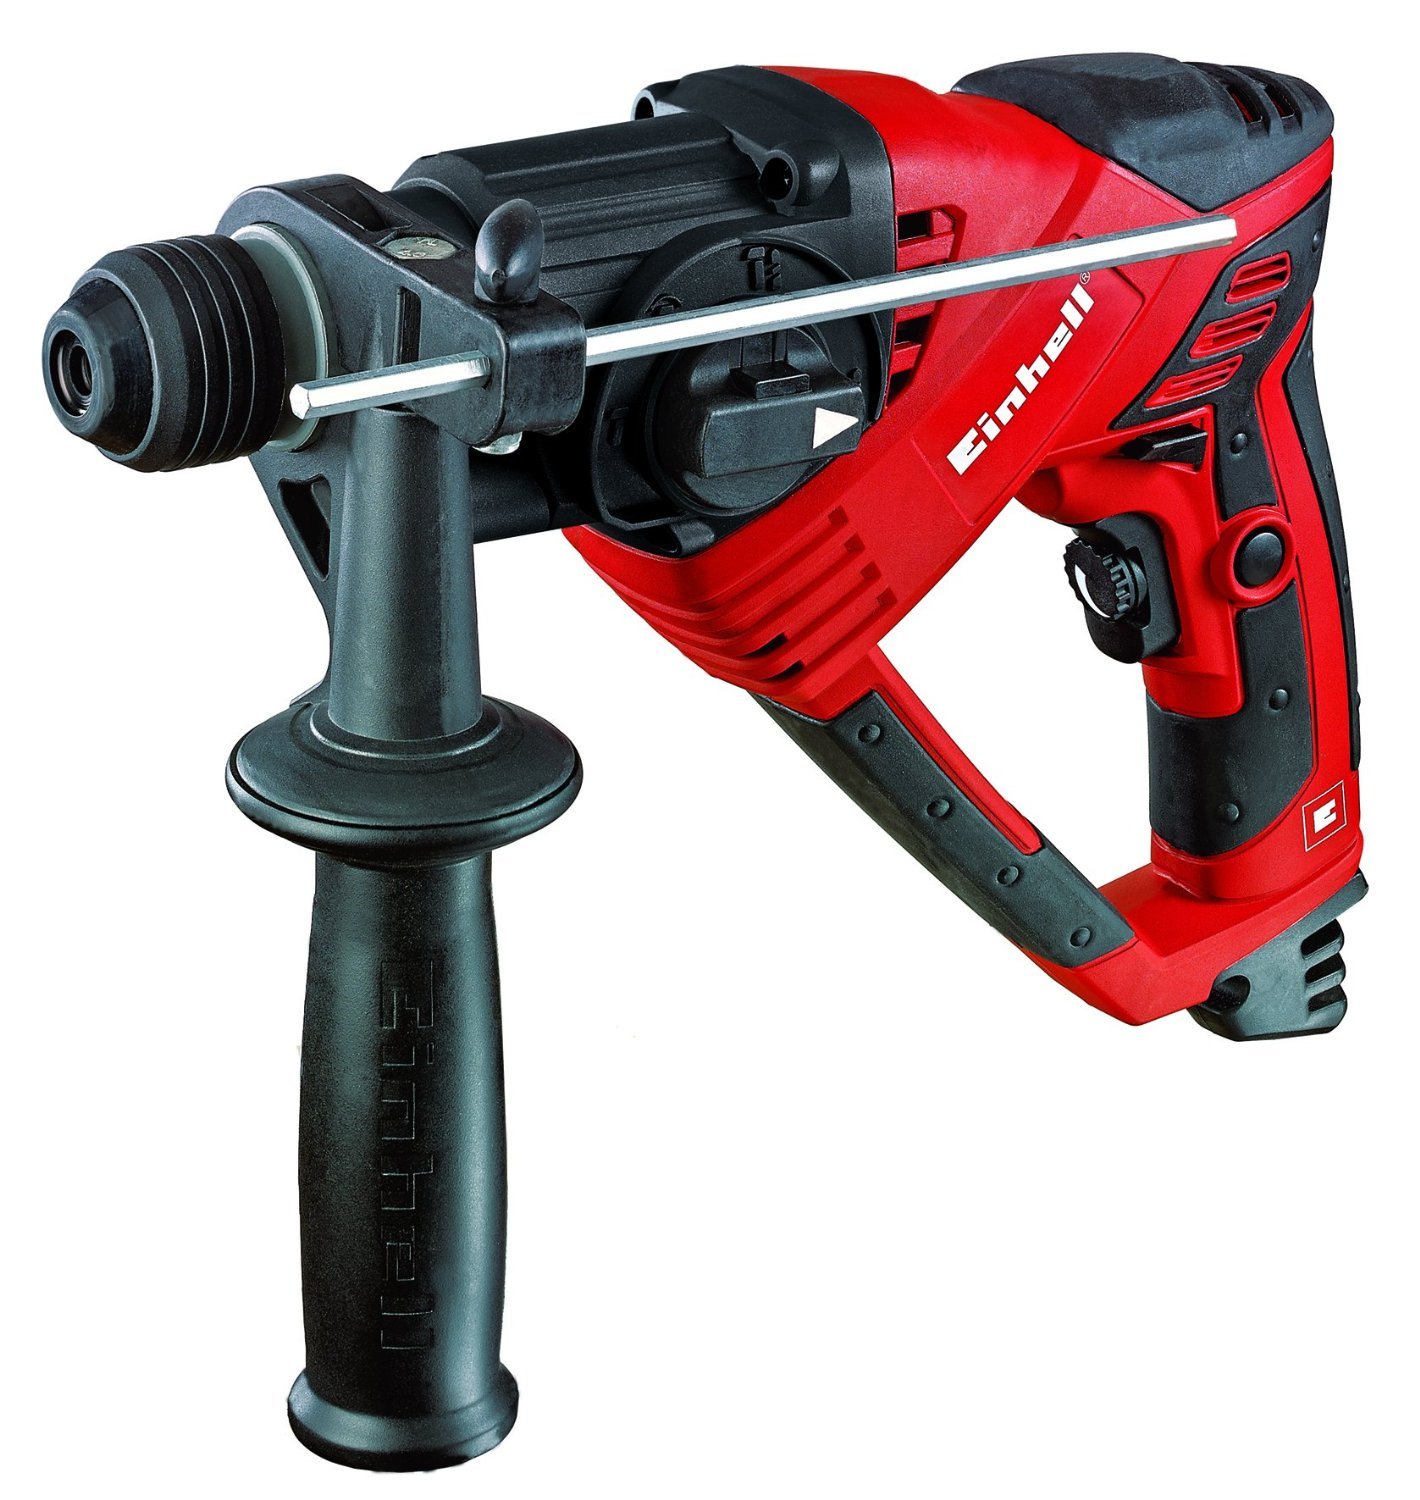 Einhell-RT-RH-20-Marteau-perforateur-électrique-5 Avis Perceuse a percussion Bosch PSB 850-2 RE